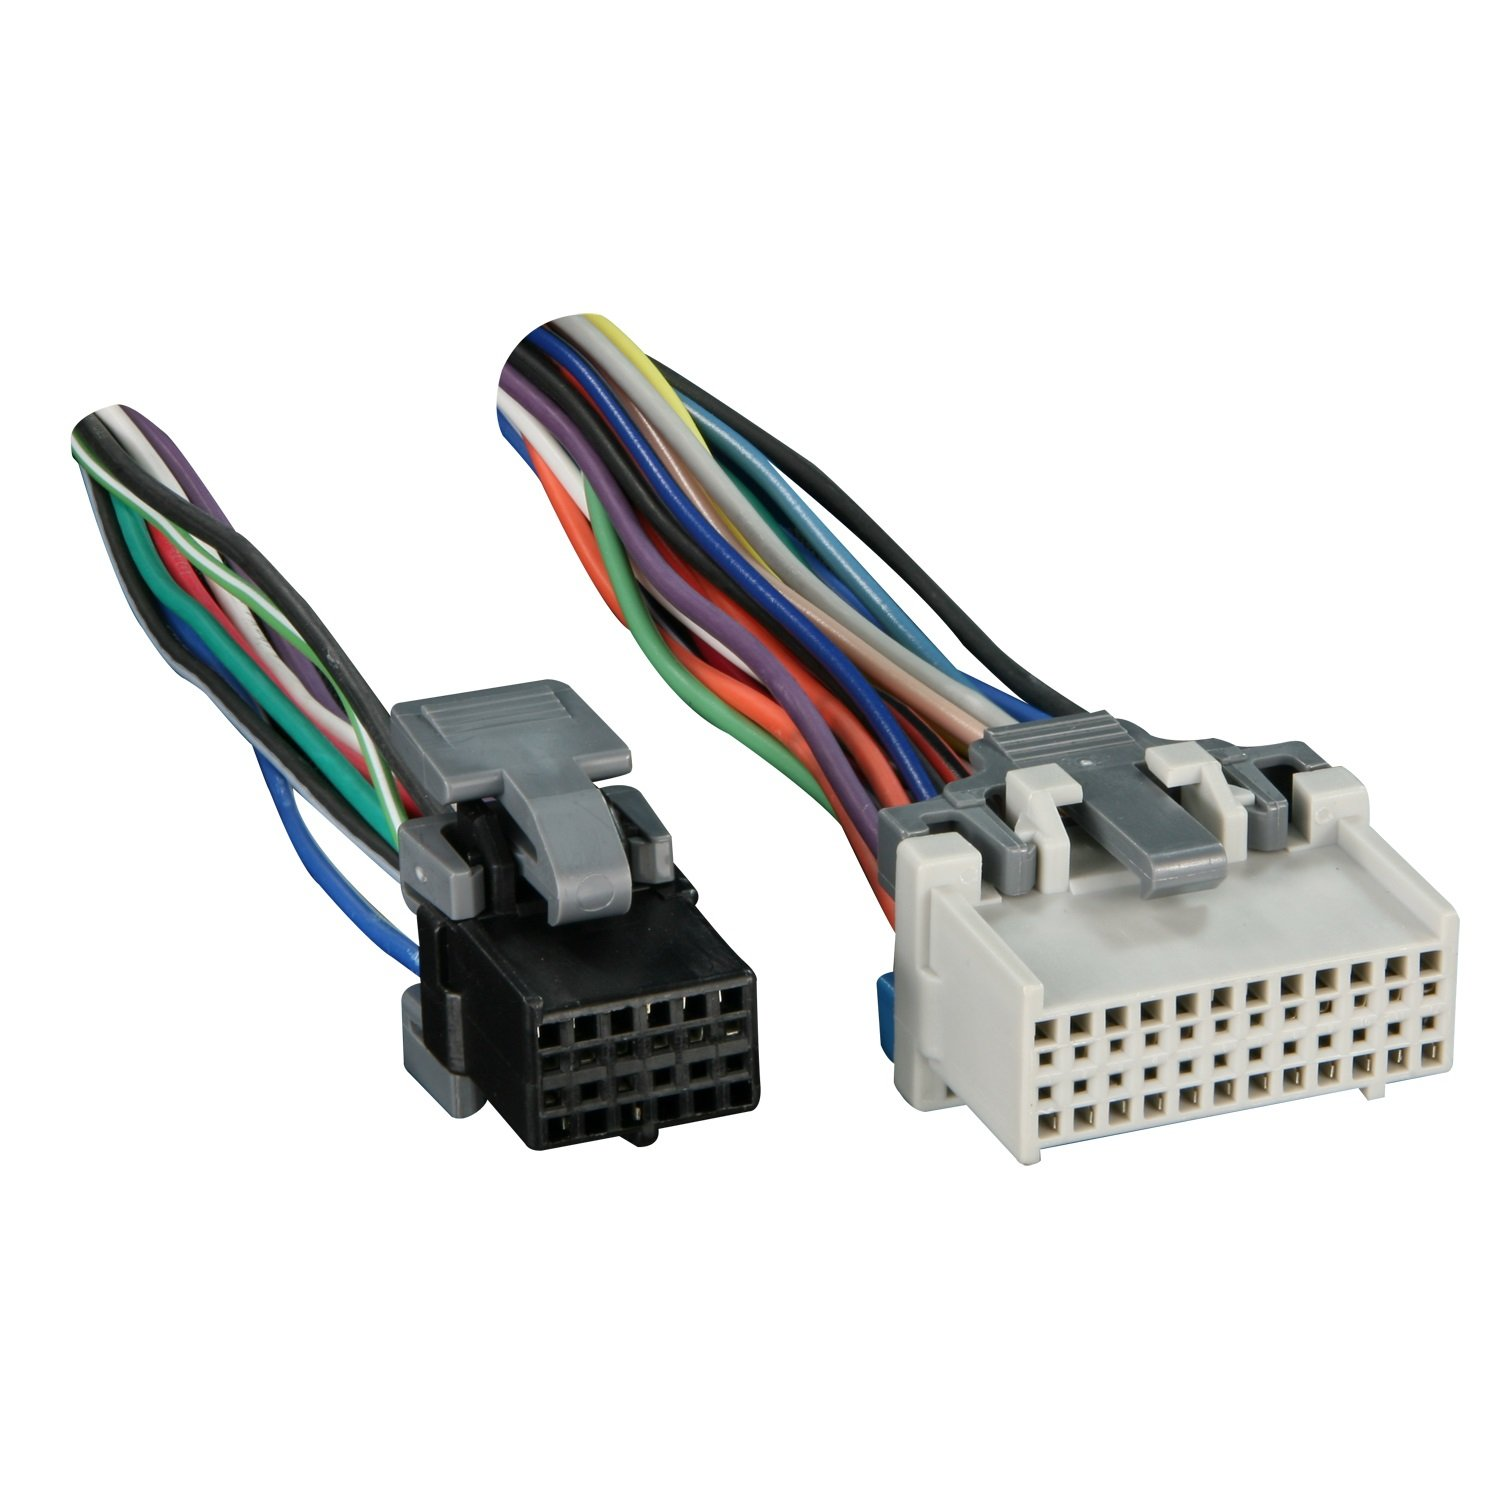 711log4bdML._SL1500_ amazon com metra turbowires 71 2003 1 wiring harness car electronics stereo wiring harness for 2001 chevy malibu at crackthecode.co